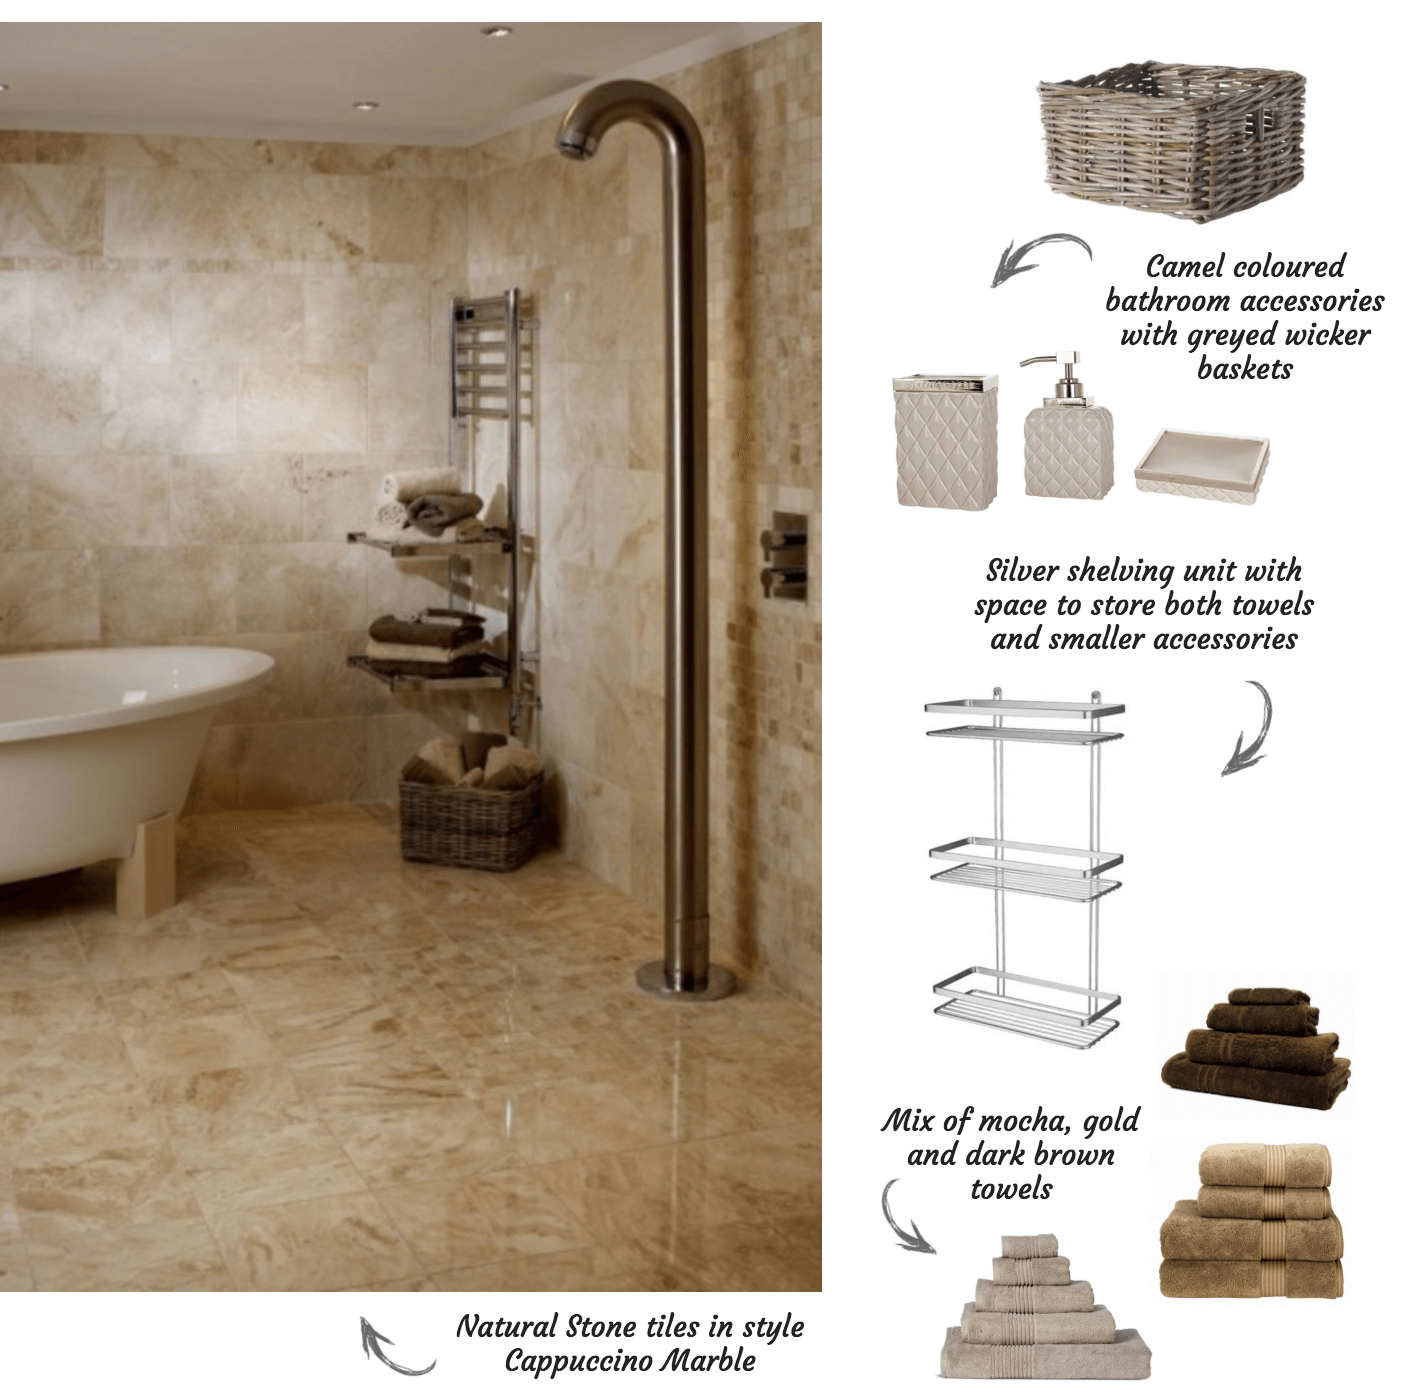 Natural Stone Tiles for Wet Rooms